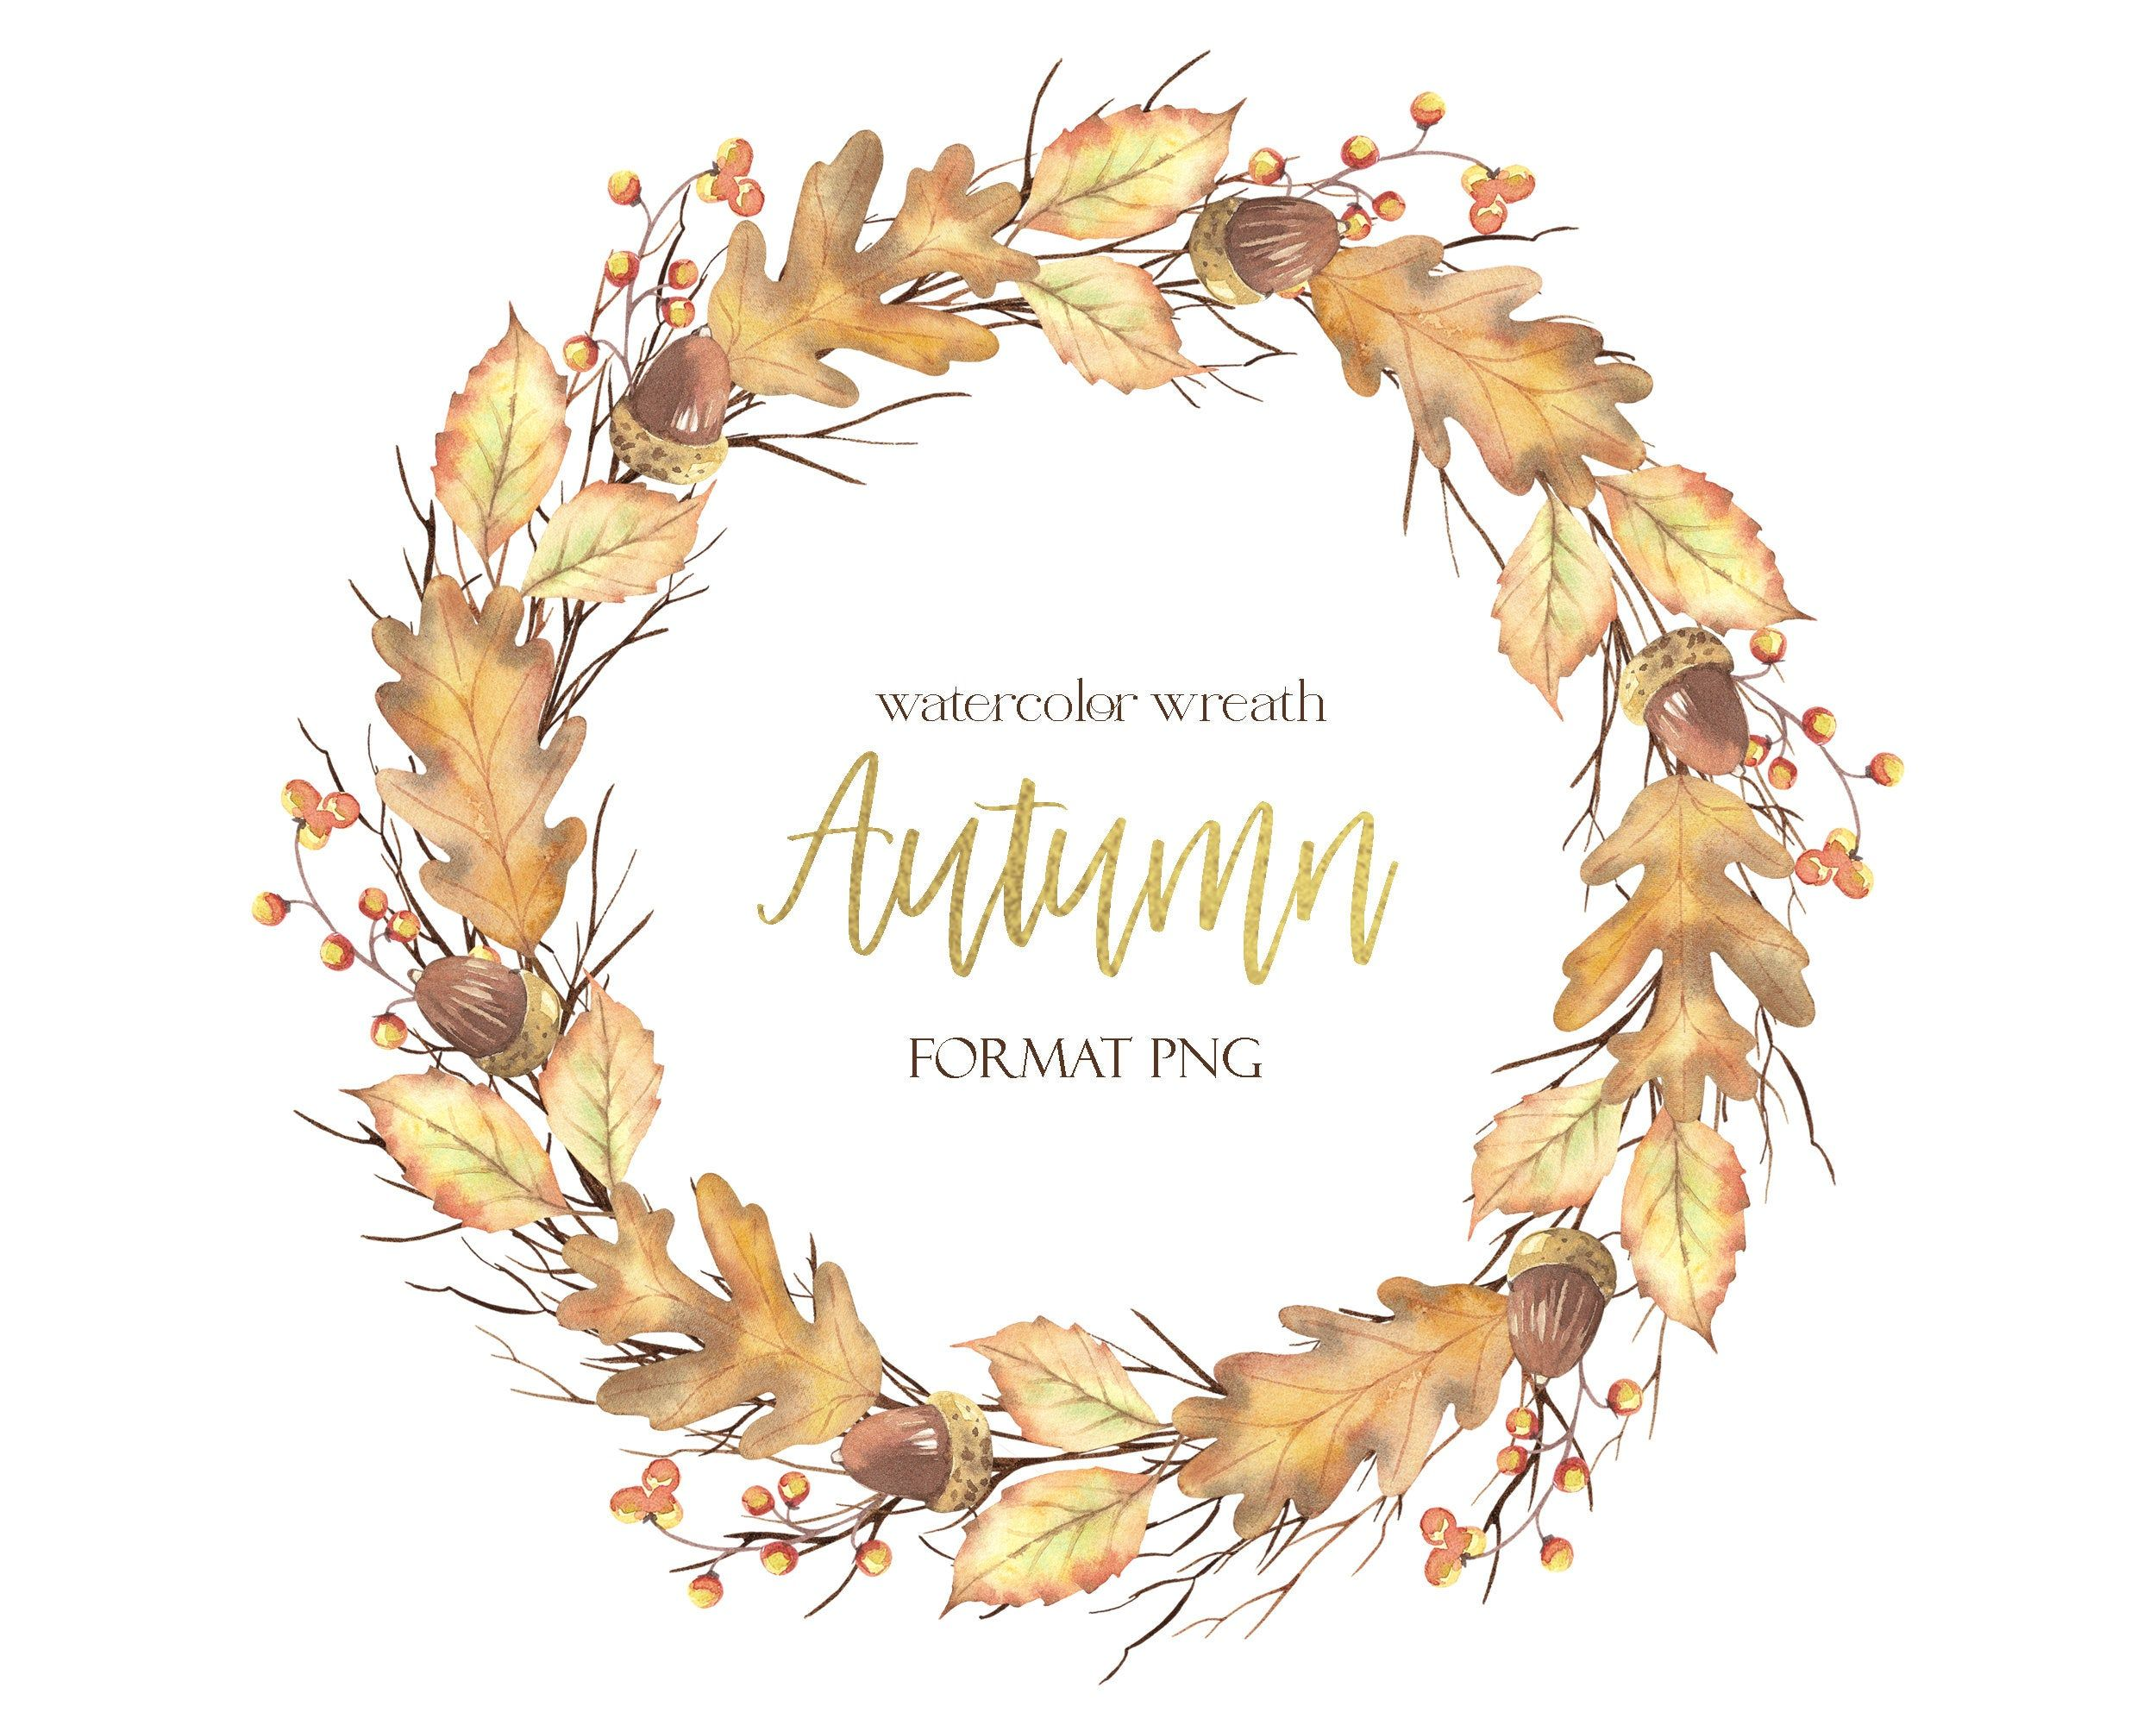 Wreath Of Flowers And Autumn Leaves Invitation Card Flowers Wreath Lovers Day Png And Vector With Transparent Background For Free Download Leaf Invitations Watercolor Autumn Leaves Floral Illustrations